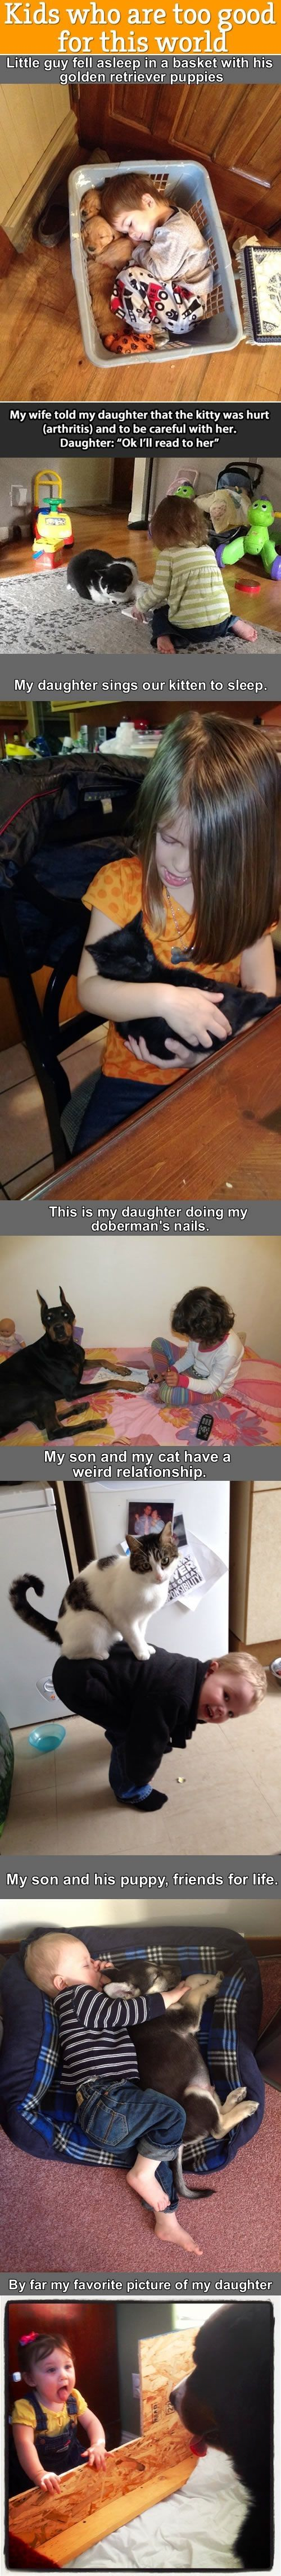 Hilarious images of the day -75 pics- Kids Who Are Too Good For This World (Compilation)